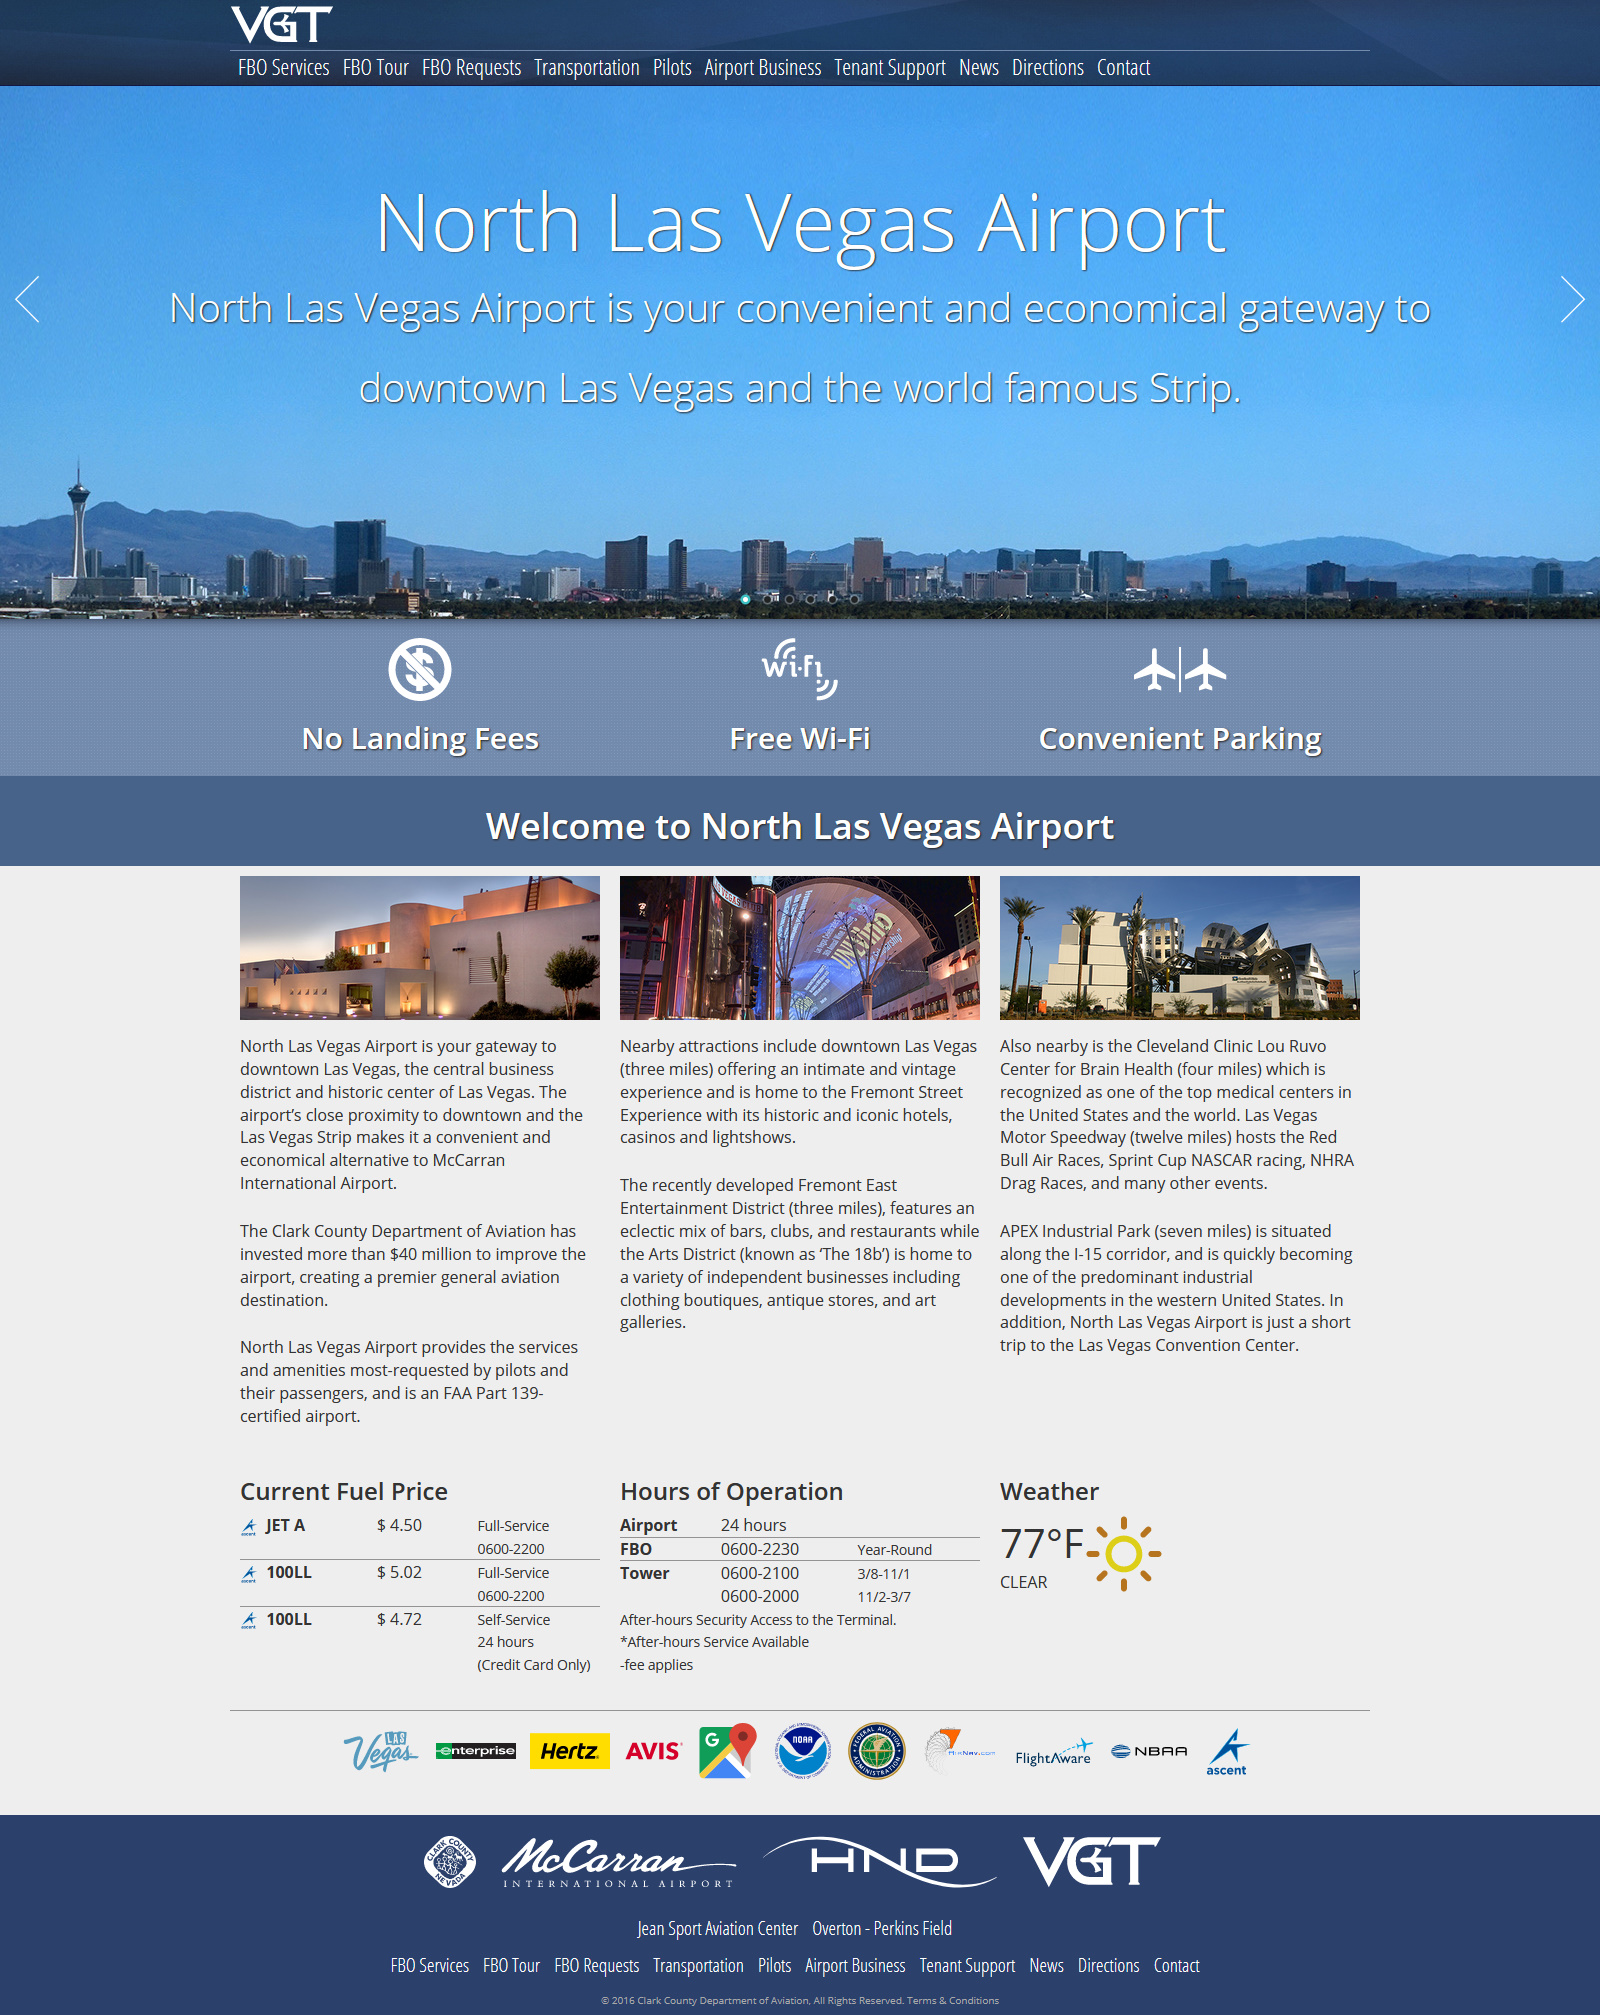 North Las Vegas Airport by Jon Apisa